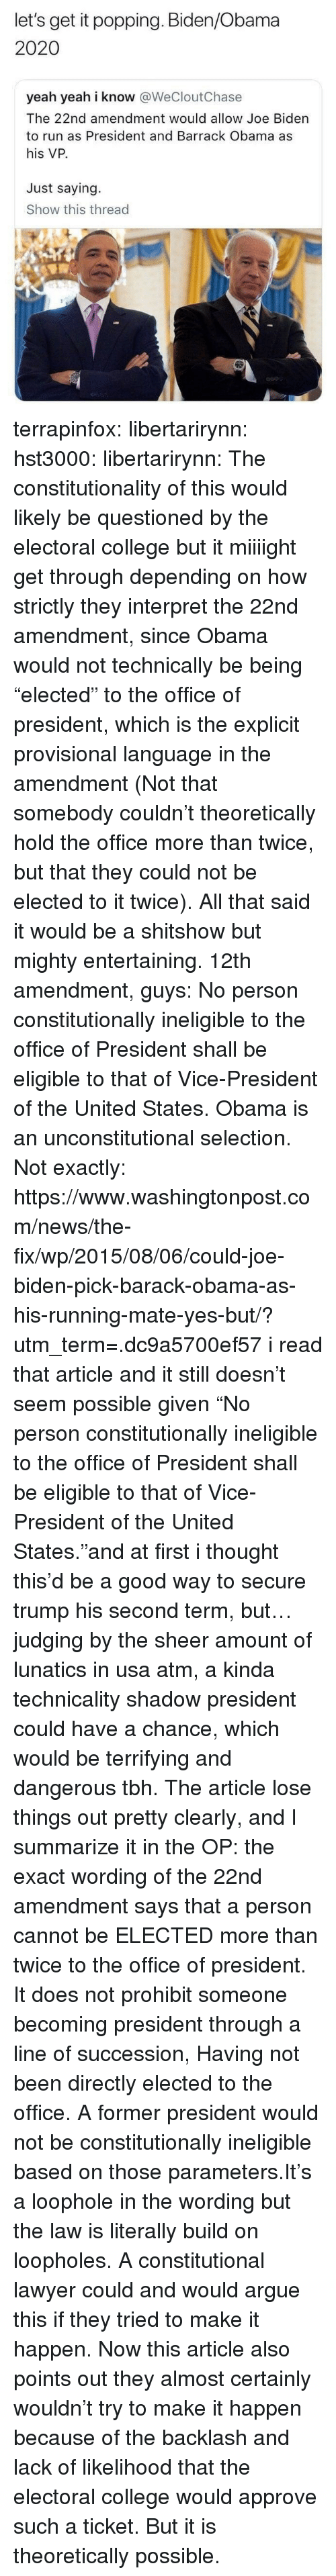 "Arguing, College, and Joe Biden: let's get it popping. Biden/Obama  2020  yeah yeah i know @WeCloutChase  The 22nd amendment would allow Joe Biden  to run as President and Barrack Obama as  his VP.  Just saying.  Show this thread  600 terrapinfox:  libertarirynn: hst3000:  libertarirynn:  The constitutionality of this would likely be questioned by the electoral college but it miiiight get through depending on how strictly they interpret the 22nd amendment, since Obama would not technically be being ""elected"" to the office of president, which is the explicit provisional language in the amendment (Not that somebody couldn't theoretically hold the office more than twice, but that they could not be elected to it twice).  All that said it would be a shitshow but mighty entertaining.  12th amendment, guys:  No person constitutionally ineligible to the office of President shall  be eligible to that of Vice-President of the United States.  Obama is an unconstitutional selection.   Not exactly: https://www.washingtonpost.com/news/the-fix/wp/2015/08/06/could-joe-biden-pick-barack-obama-as-his-running-mate-yes-but/?utm_term=.dc9a5700ef57  i read that article and it still doesn't seem possible given ""No person constitutionally ineligible to the office of President shall be eligible to that of Vice-President of the United States.""and at first i thought this'd be a good way to secure trump his second term, but… judging by the sheer amount of lunatics in usa atm, a kinda technicality shadow president could have a chance, which would be terrifying and dangerous tbh.  The article lose things out pretty clearly, and I summarize it in the OP: the exact wording of the 22nd amendment says that a person cannot be ELECTED more than twice to the office of president. It does not prohibit someone becoming president through a line of succession, Having not been directly elected to the office. A former president would not be constitutionally ineligible based on those parameters.It's a loophole in the wording but the law is literally build on loopholes. A constitutional lawyer could and would argue this if they tried to make it happen. Now this article also points out they almost certainly wouldn't try to make it happen because of the backlash and lack of likelihood that the electoral college would approve such a ticket. But it is theoretically possible."